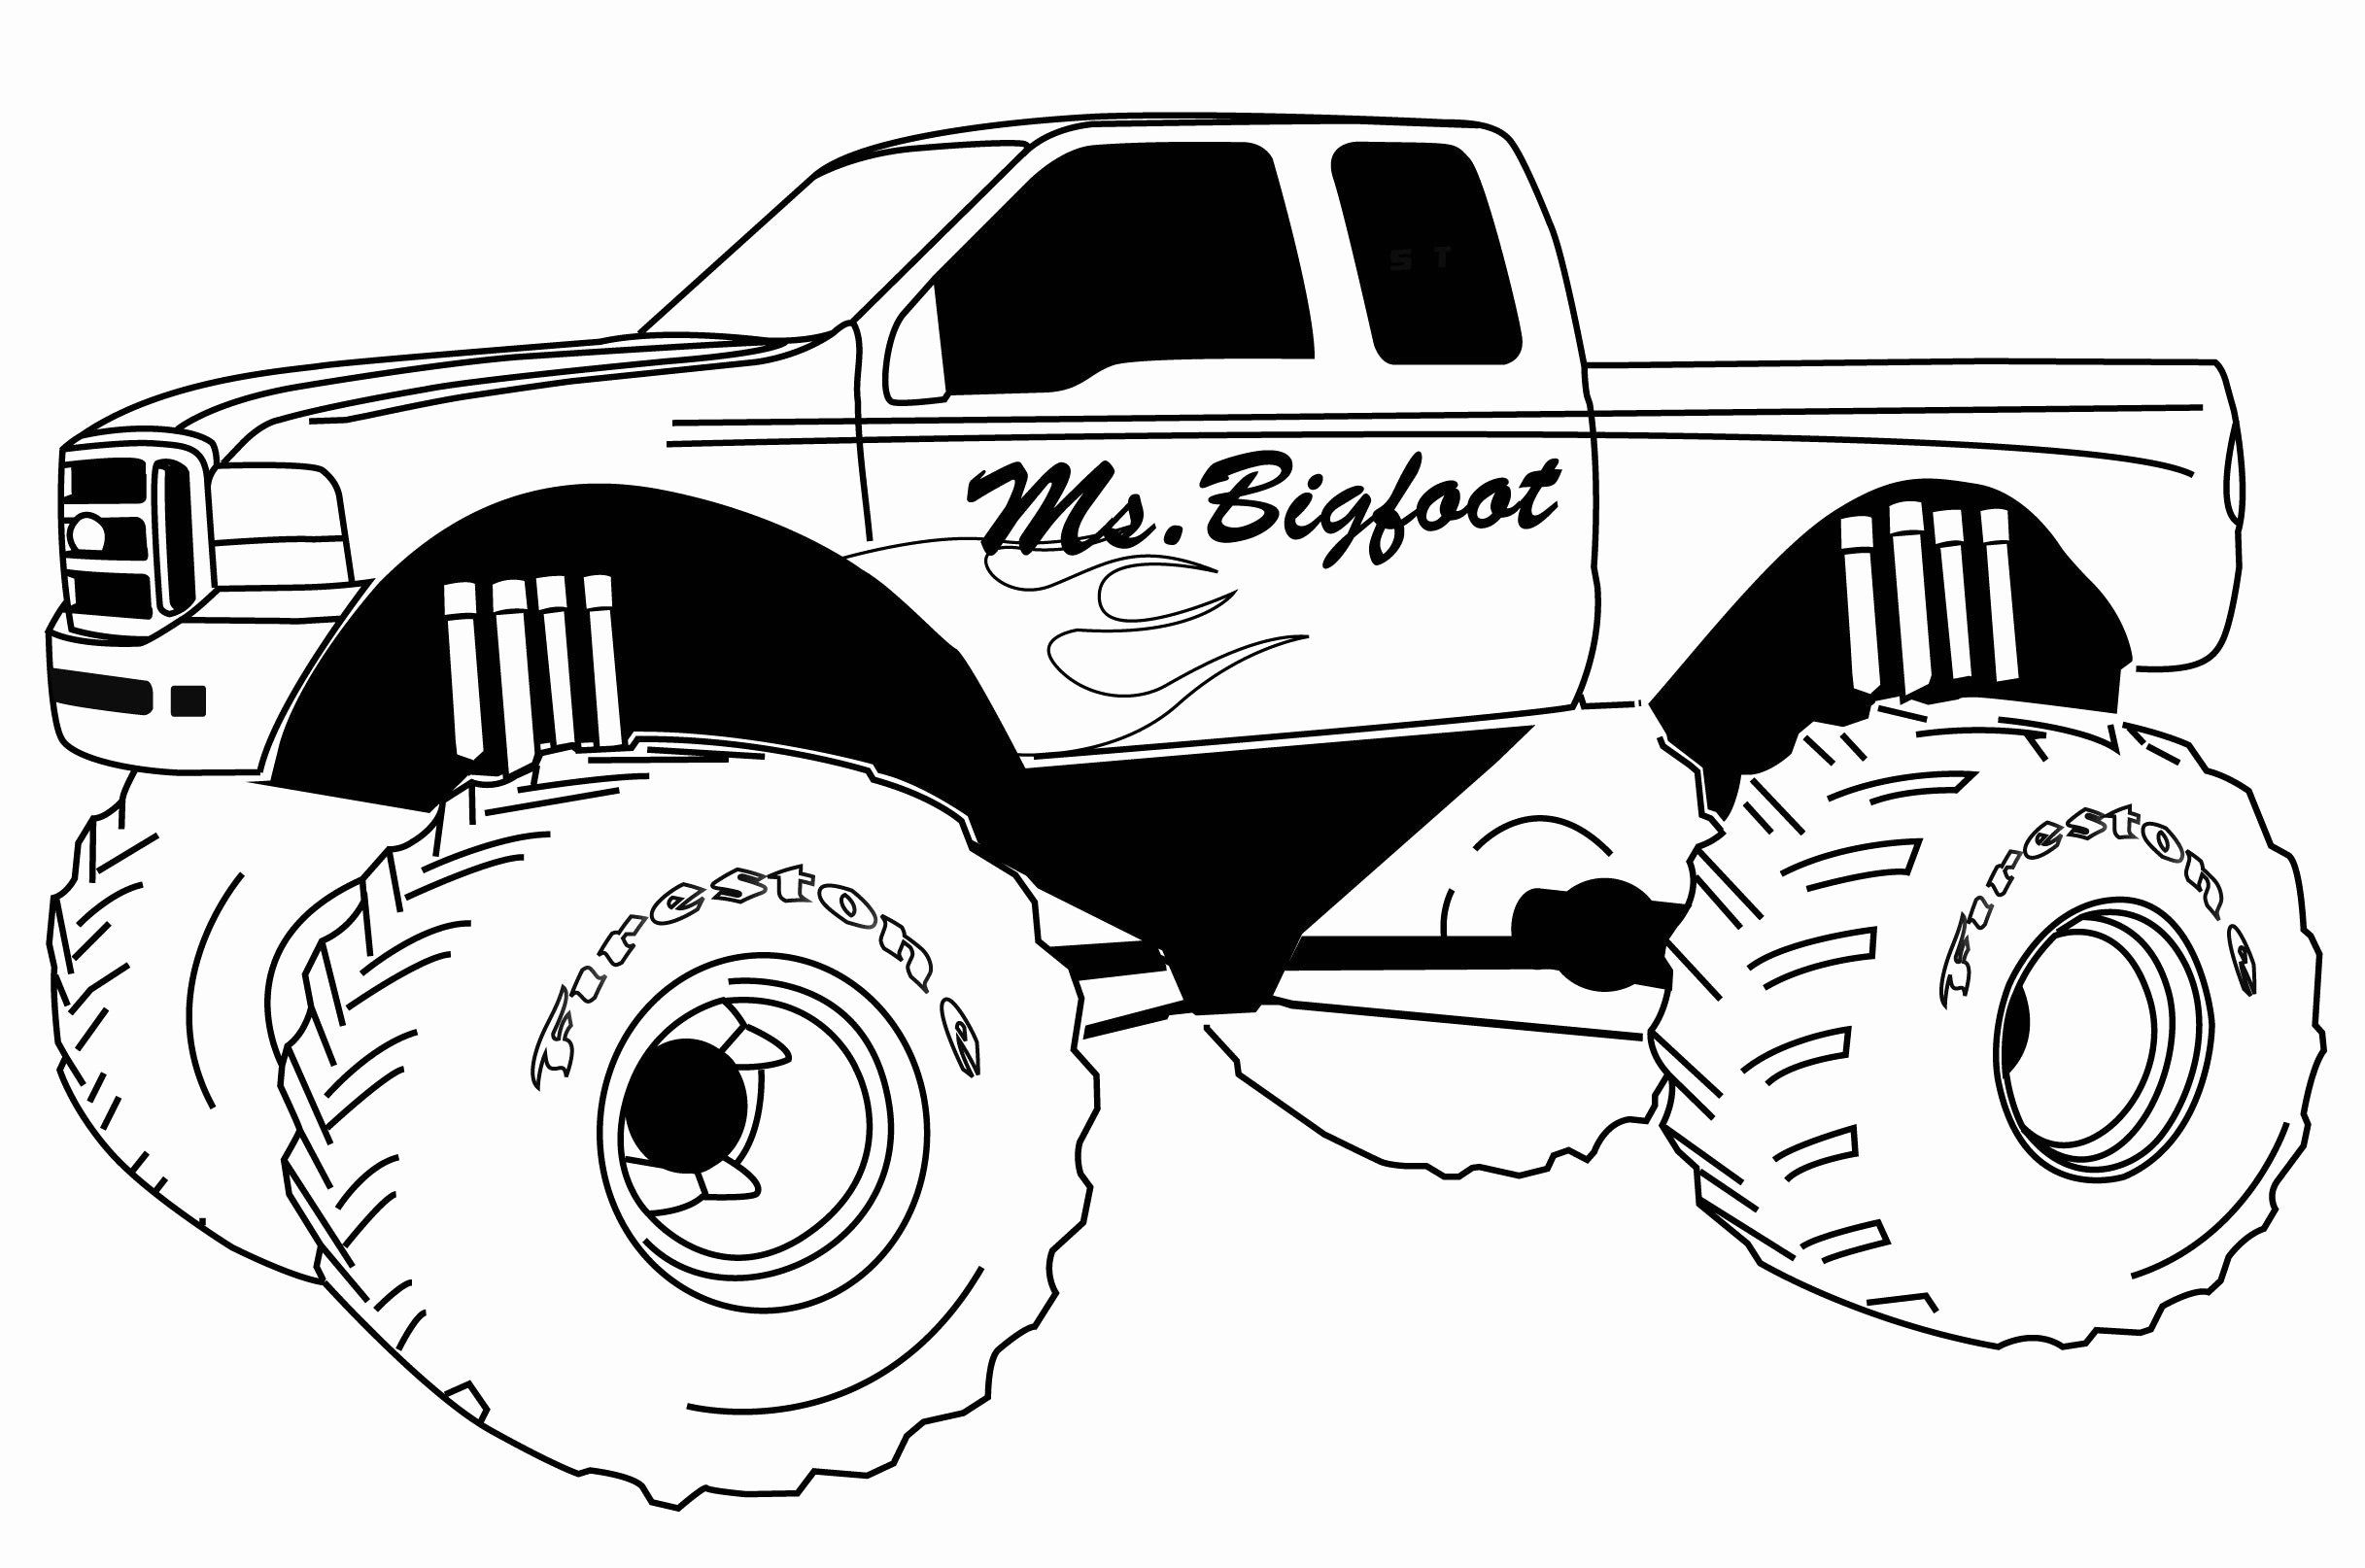 Printable Fire Truck Coloring Page Unique Coloring Book Printable Truck Coloring P Monster Truck Coloring Pages Coloring Pictures For Kids Truck Coloring Pages